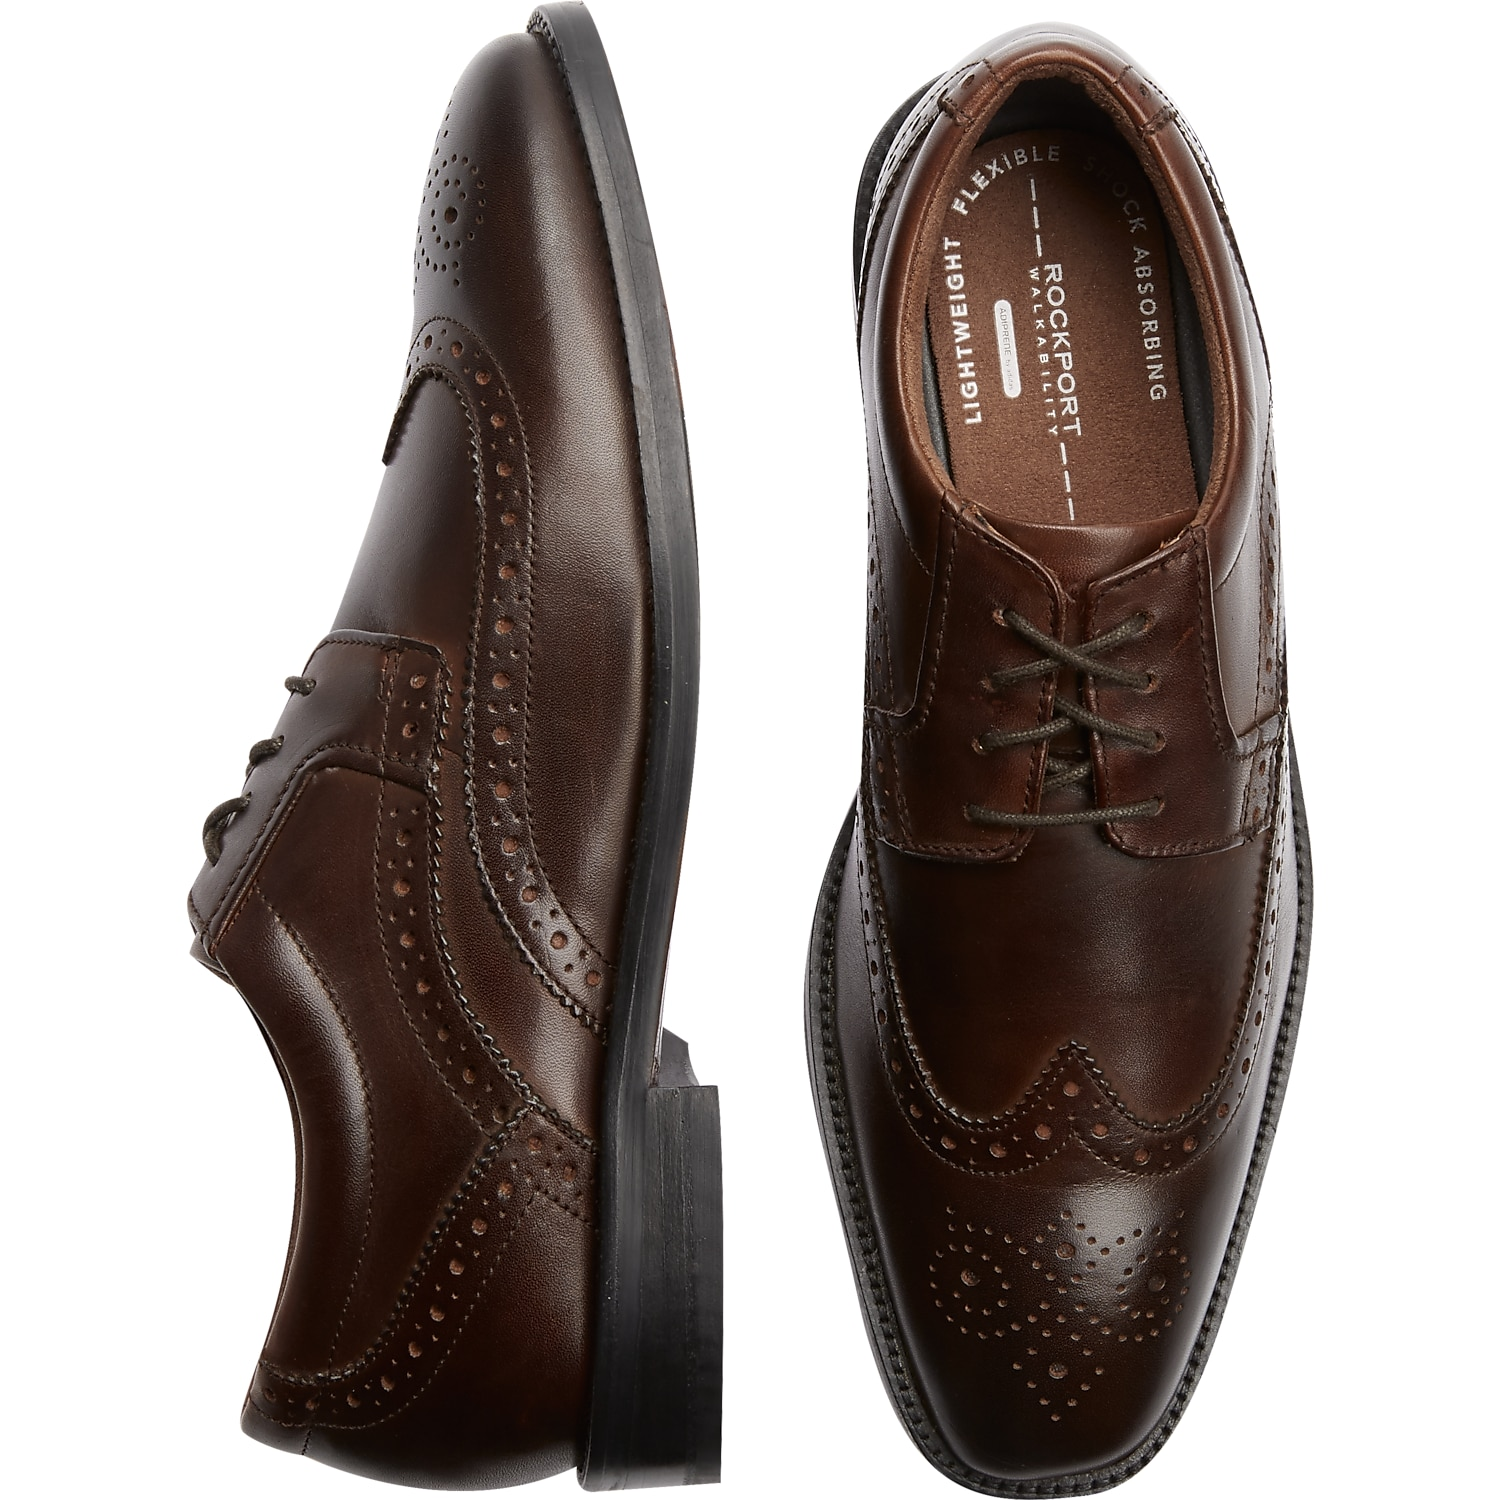 Mens Rockport, Brands - Rockport Smart Cover Brown Wingtip Shoes - Men's  Wearhouse